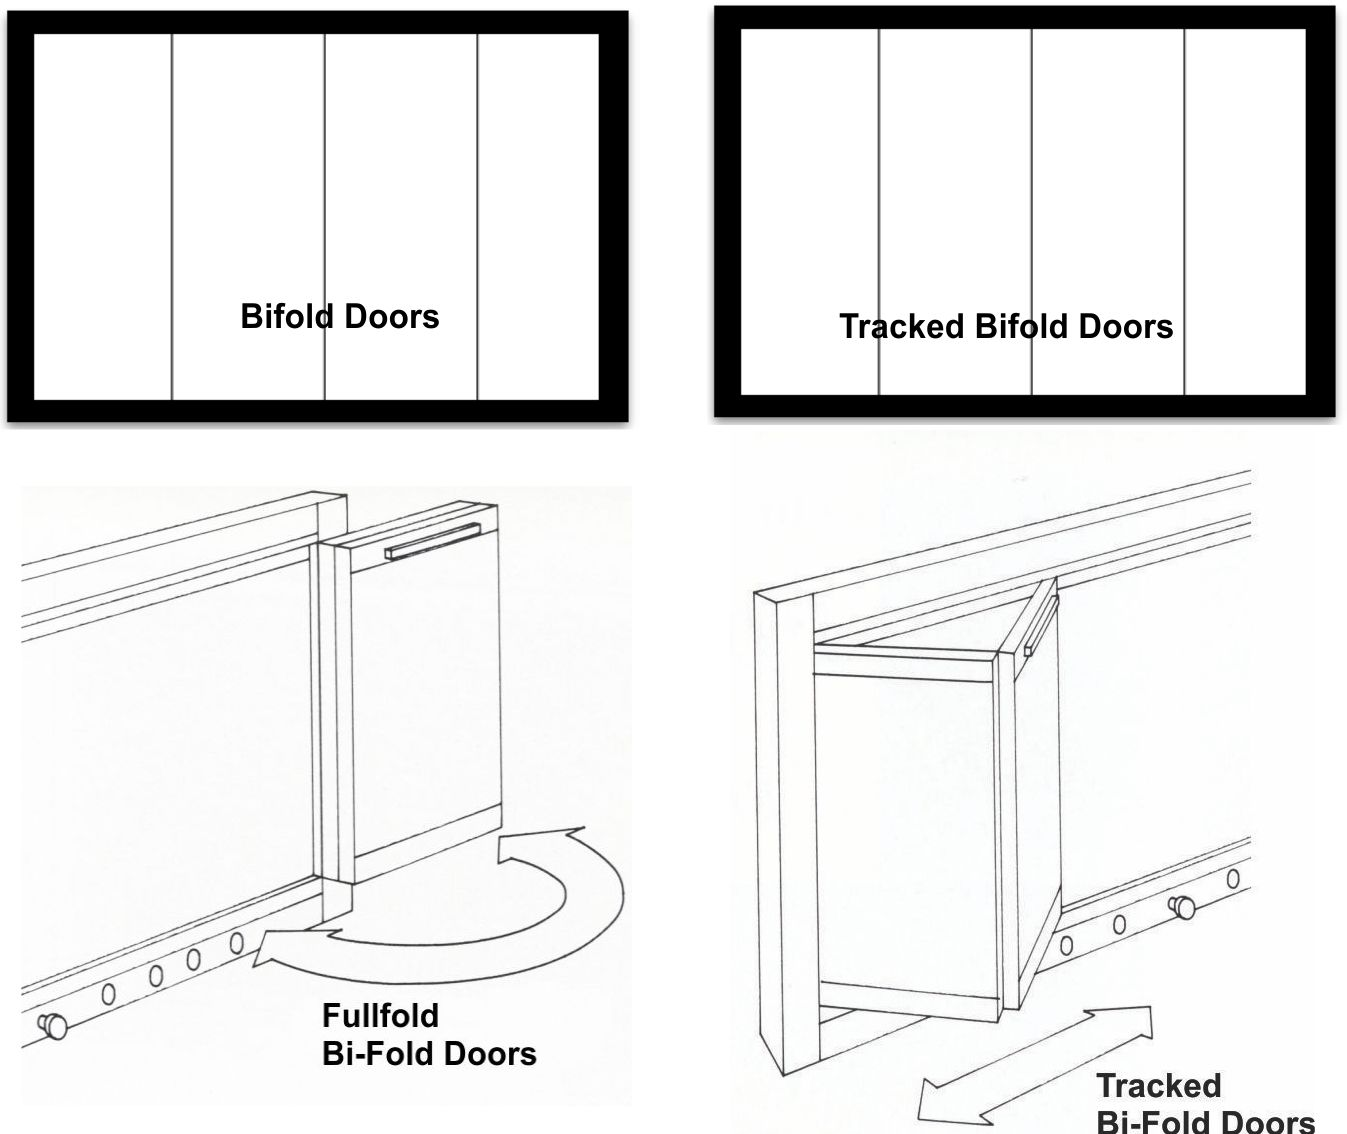 Bifold or tracked bifold doors?